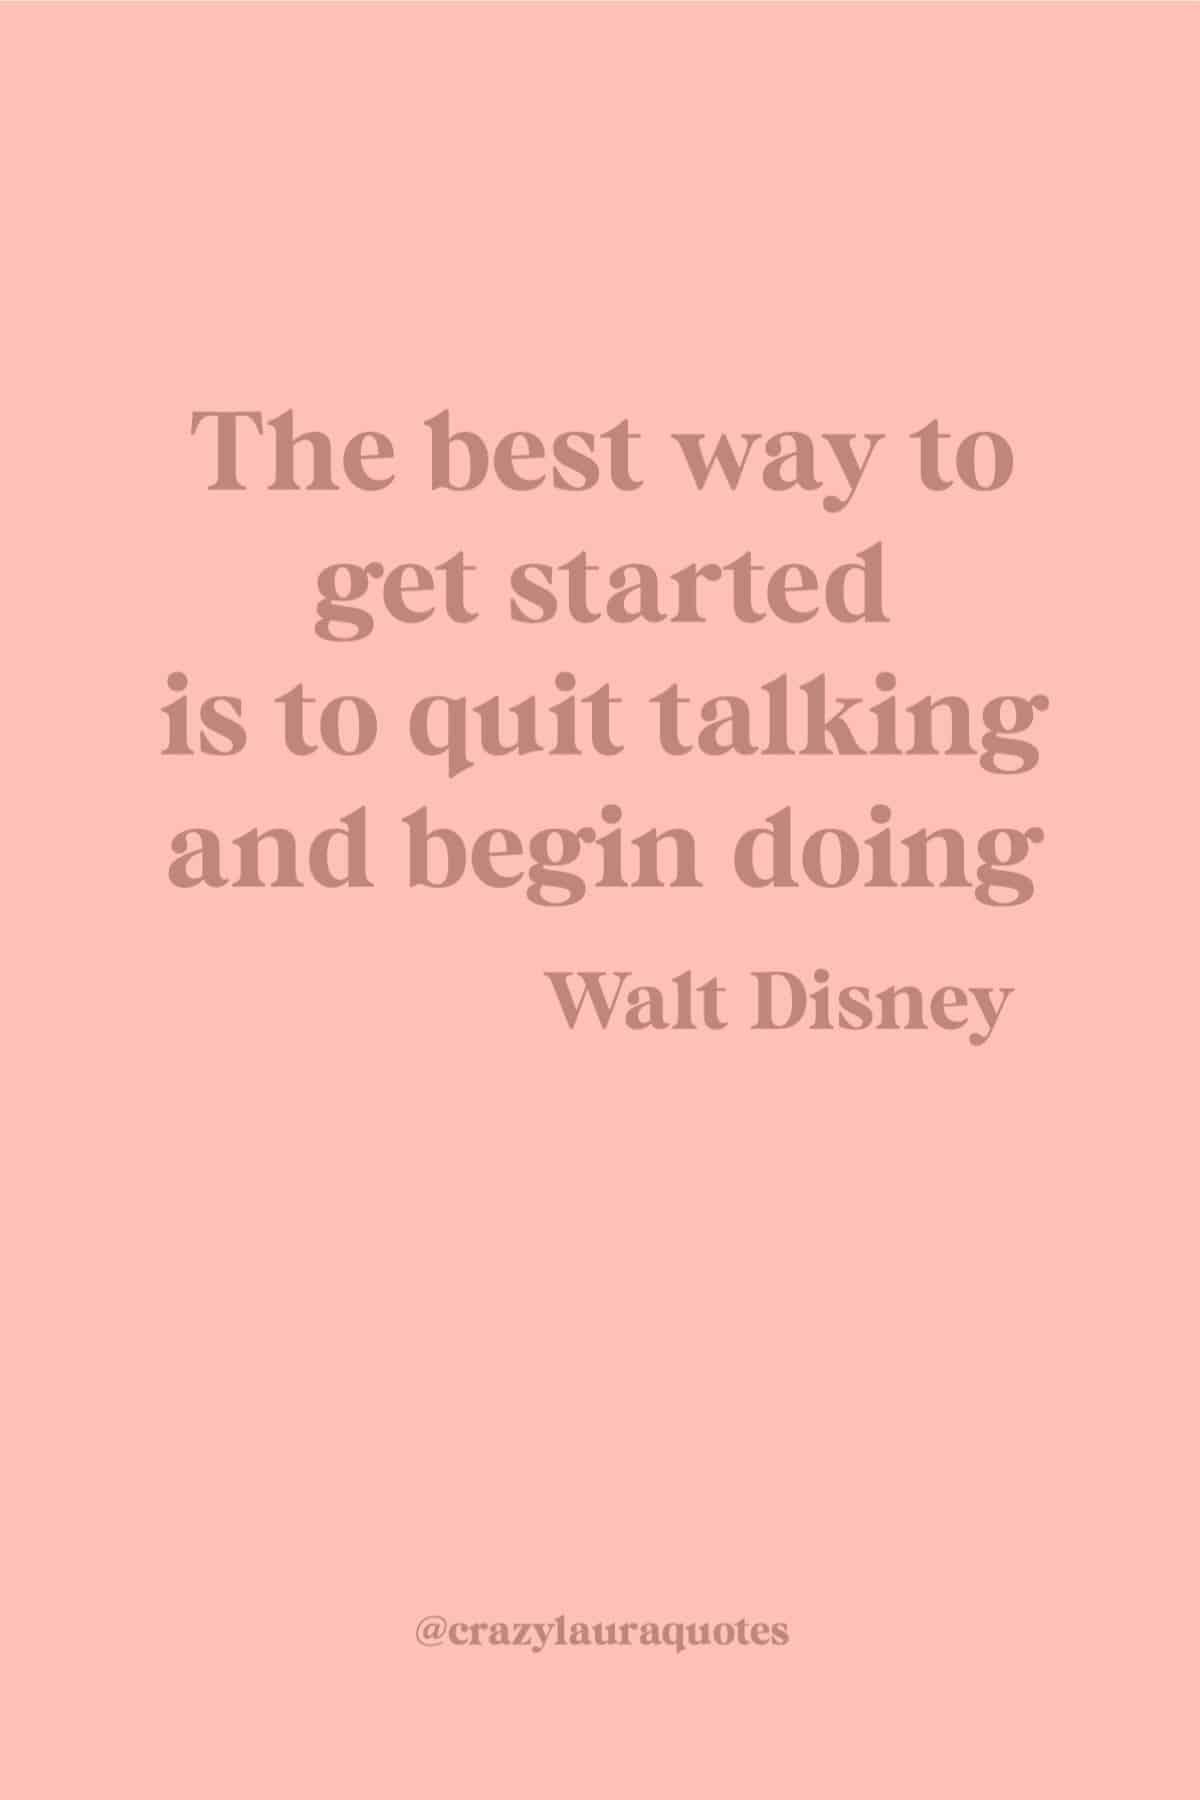 gym quote about getting started